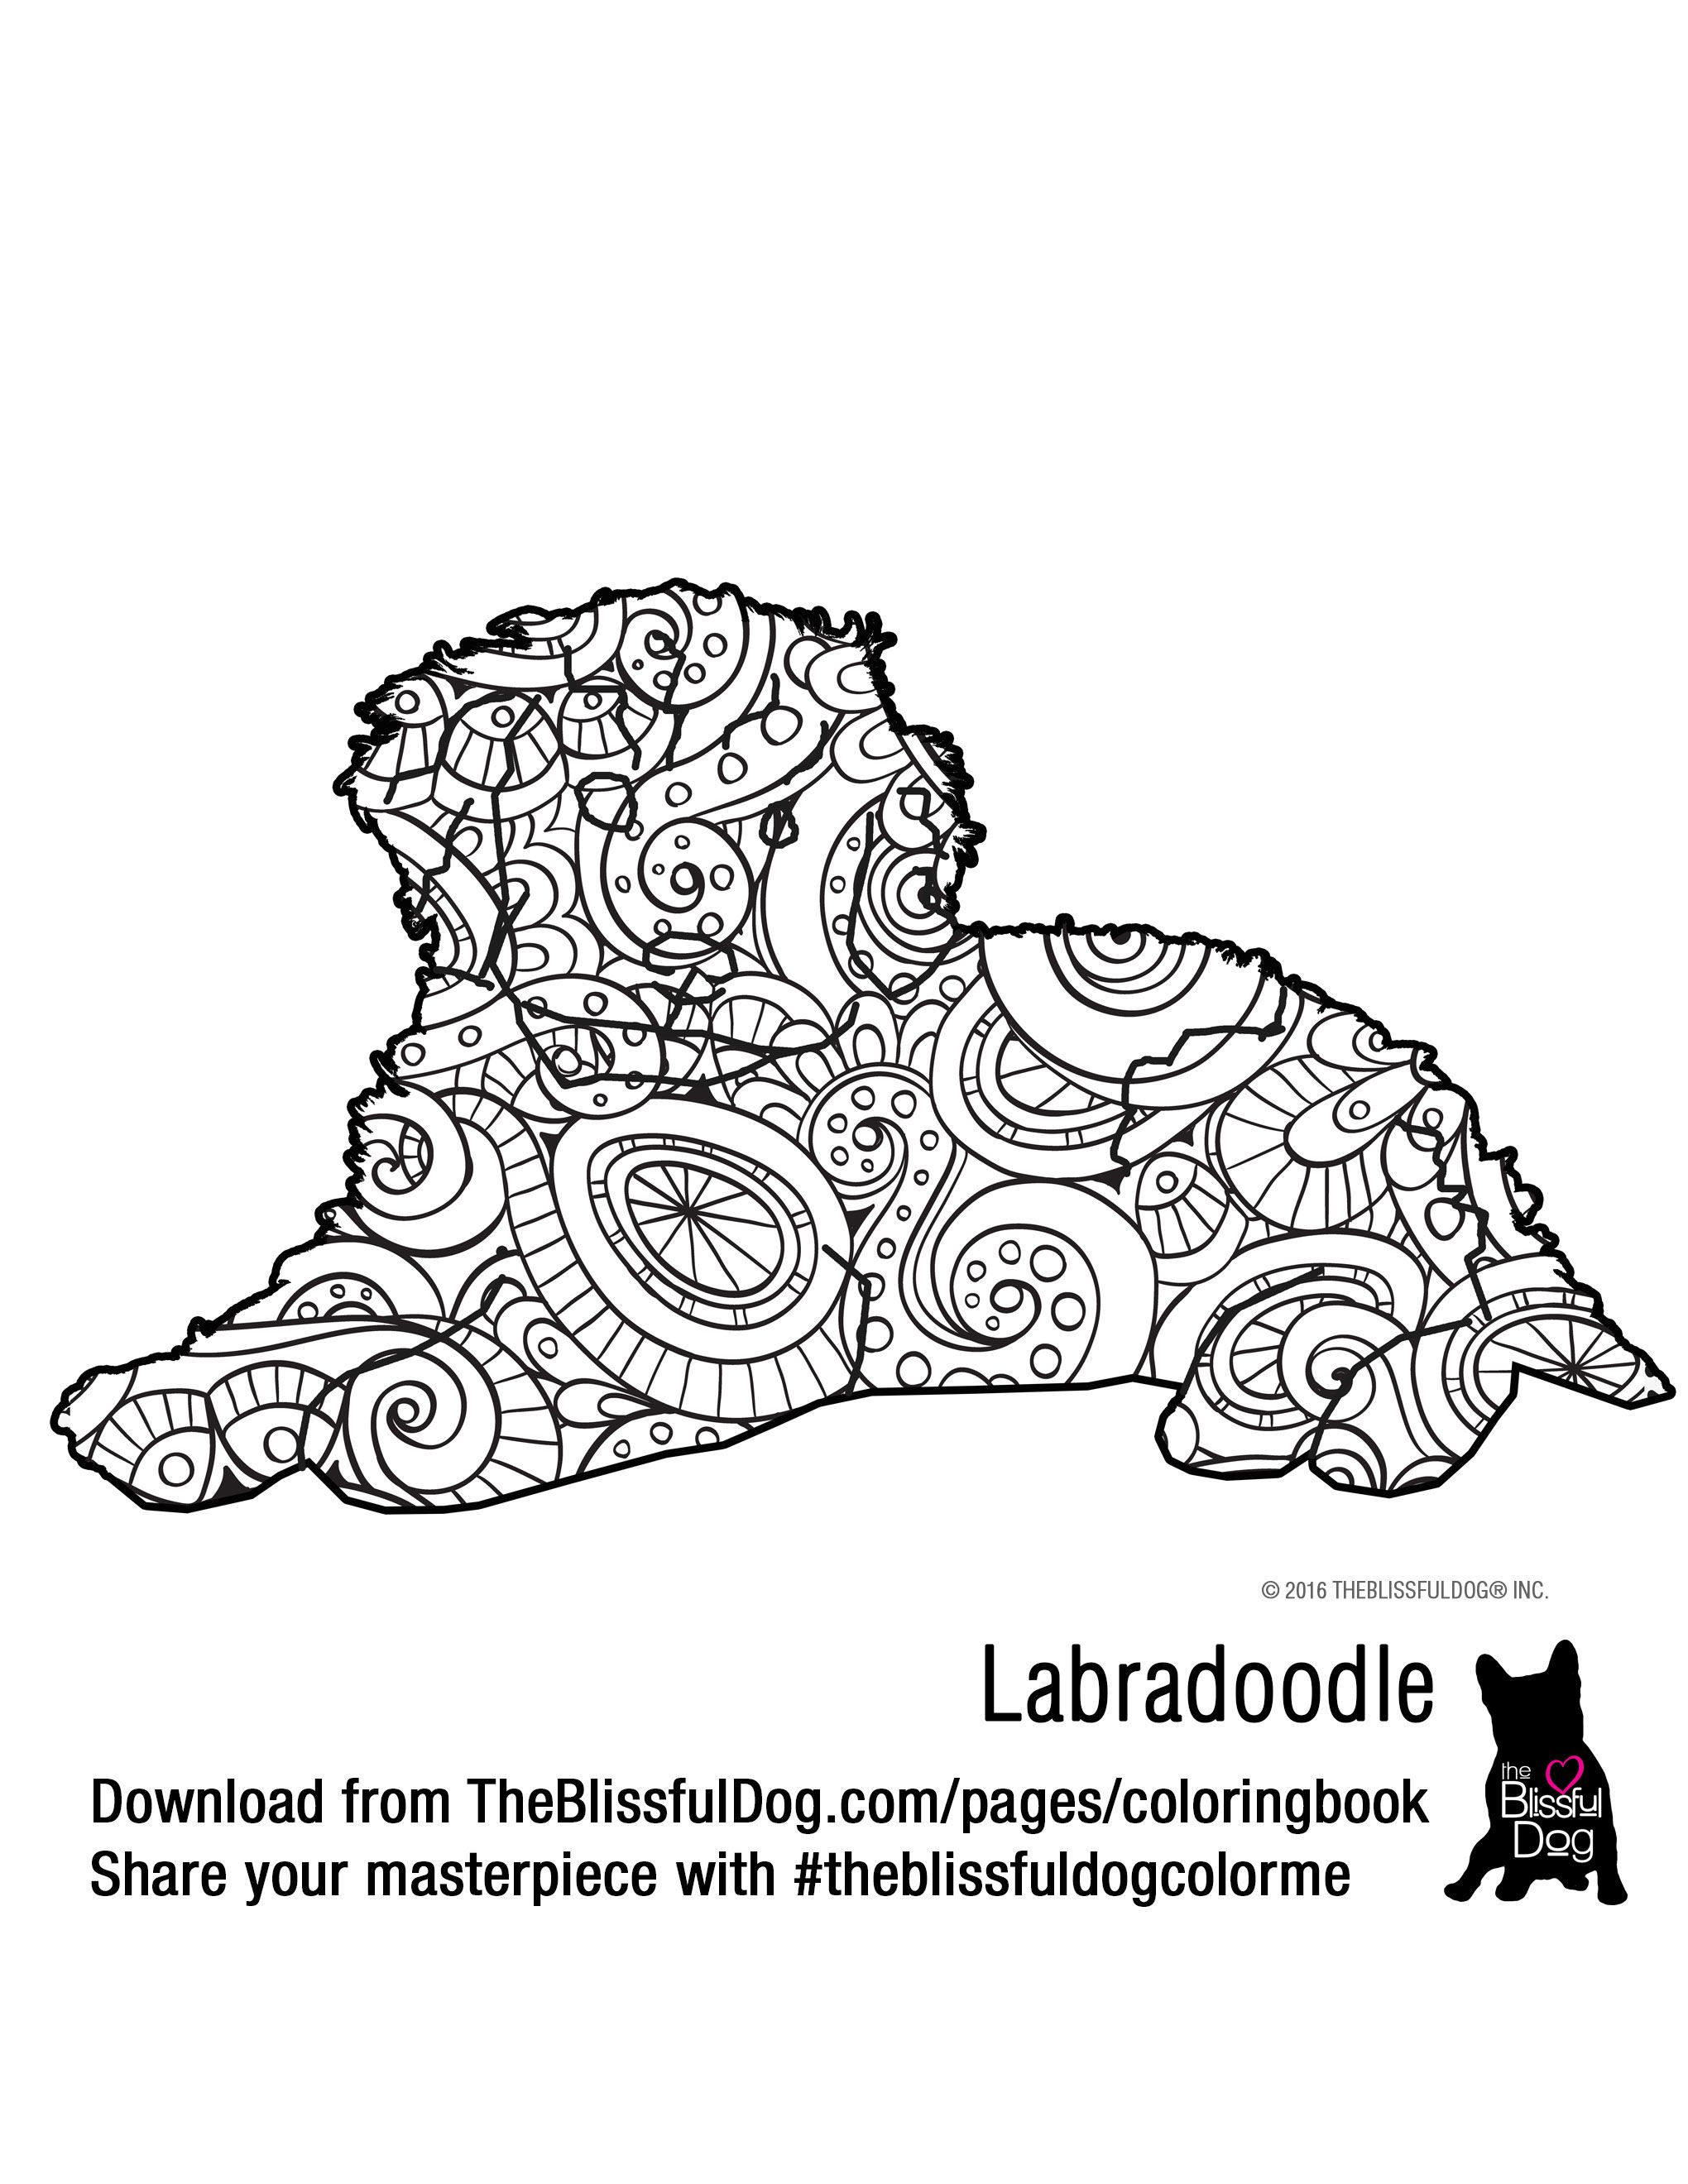 Coloring Book Labradoodle Coloring Books Dog Coloring Page